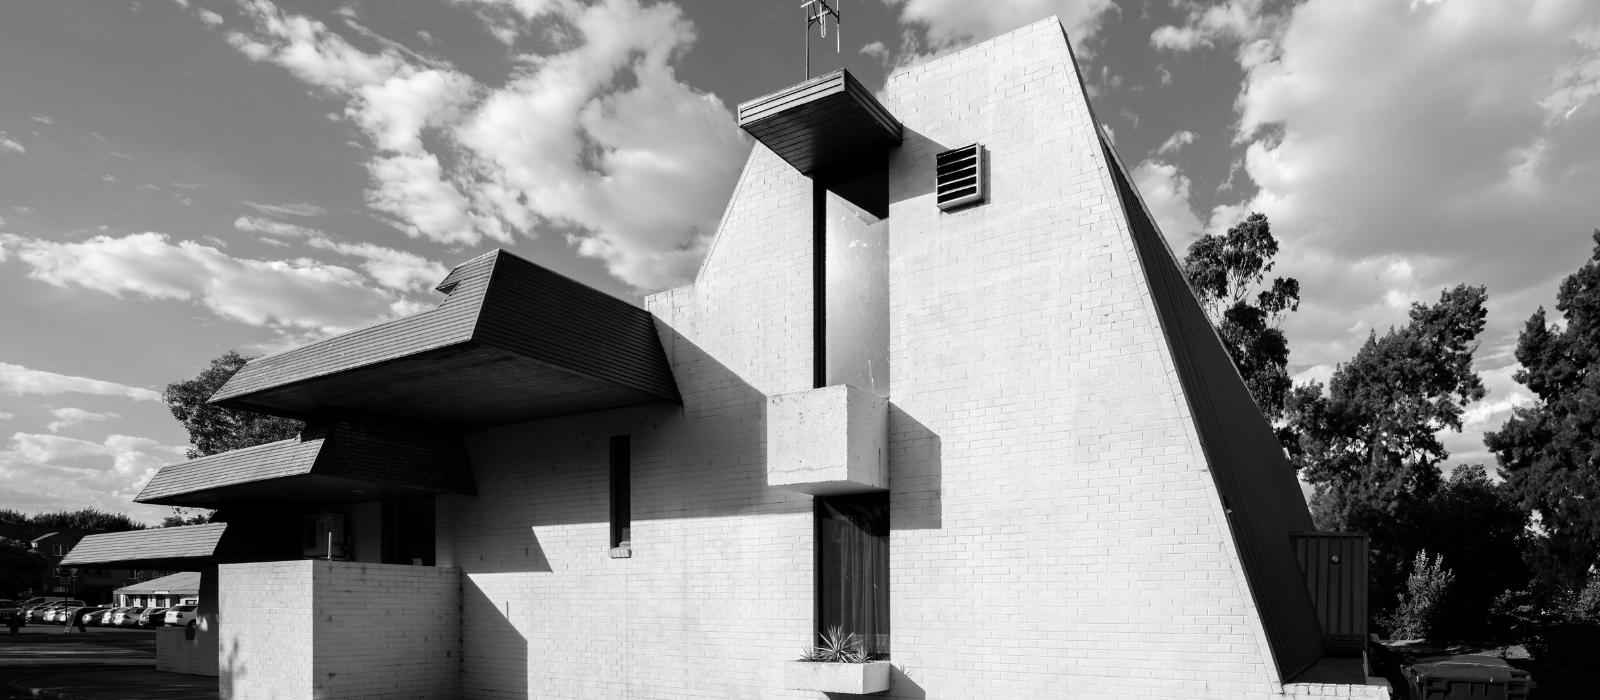 Polish White Eagle Club by Enrico Taglietti (1970). Photo: Darren Bradley